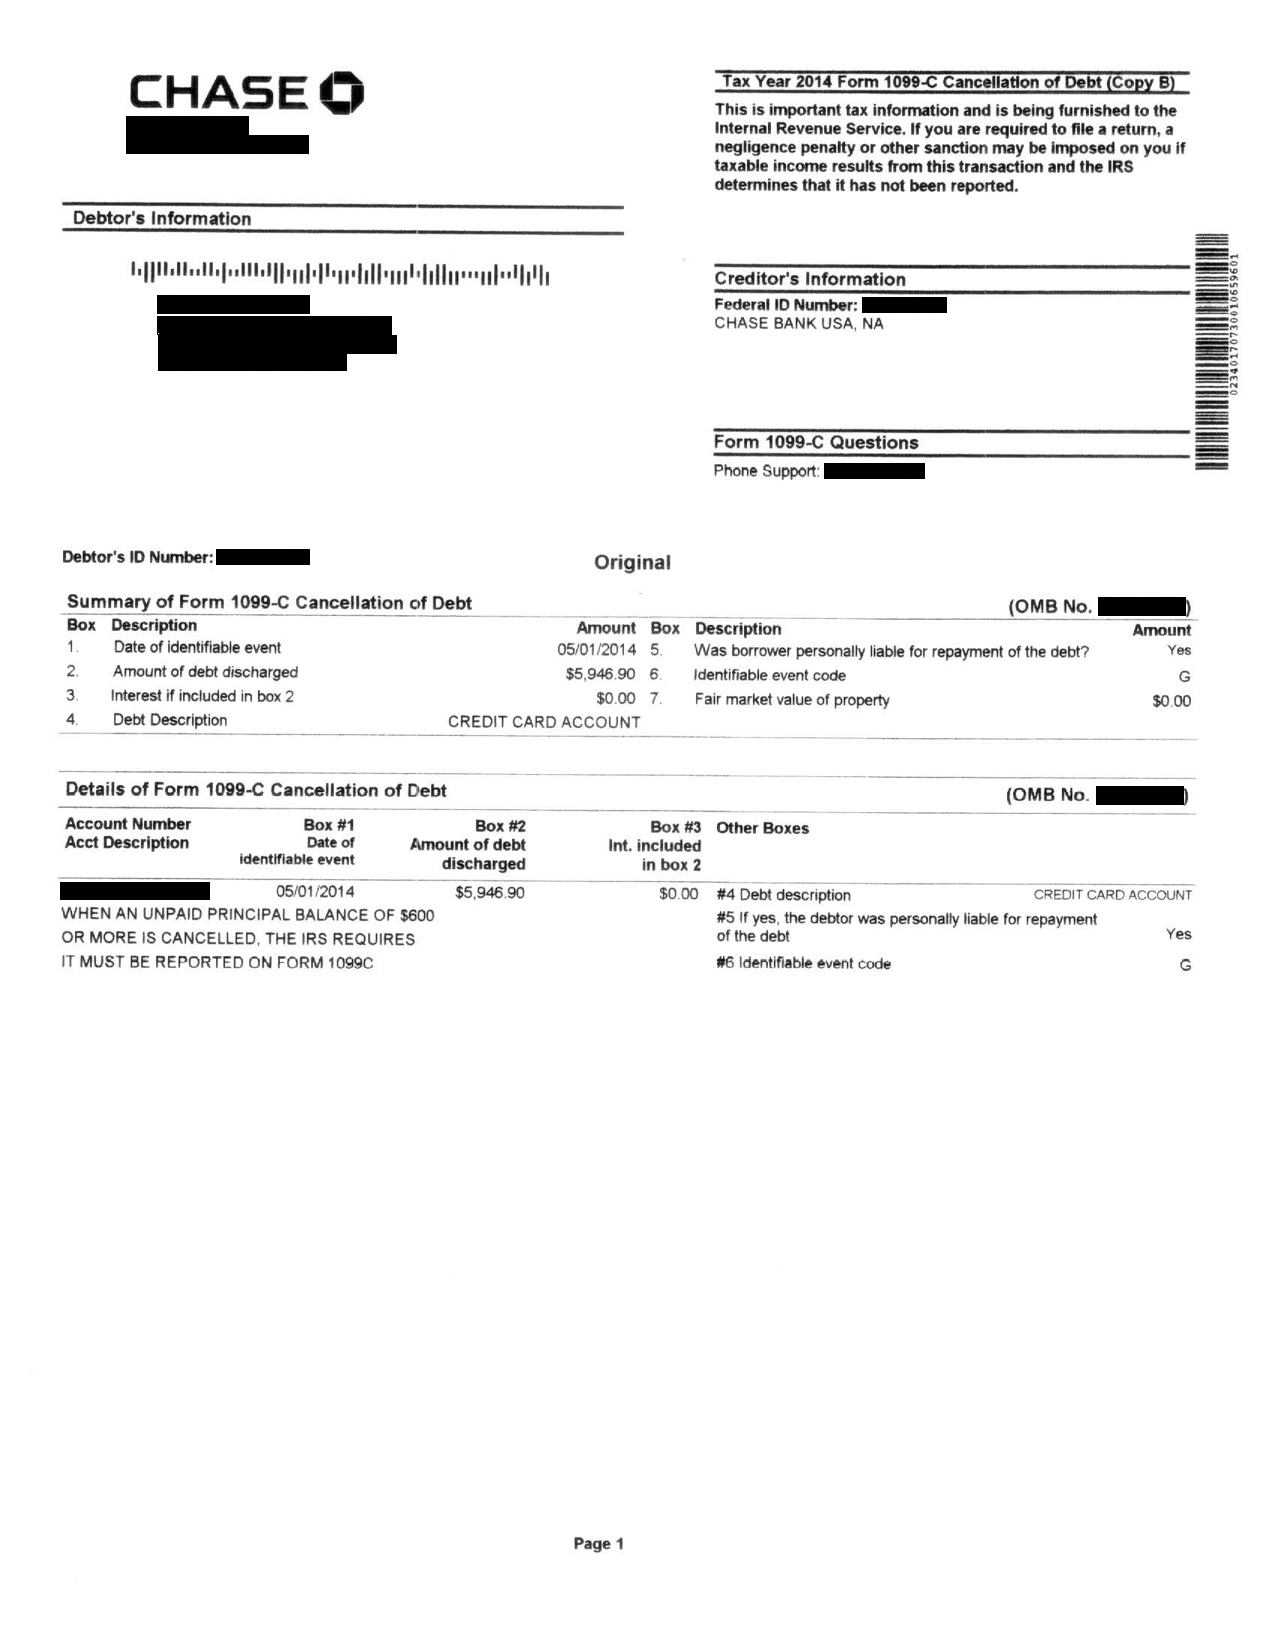 Image of a settlement letter with Chase Bank USA America with a savings of 5,946 dollars